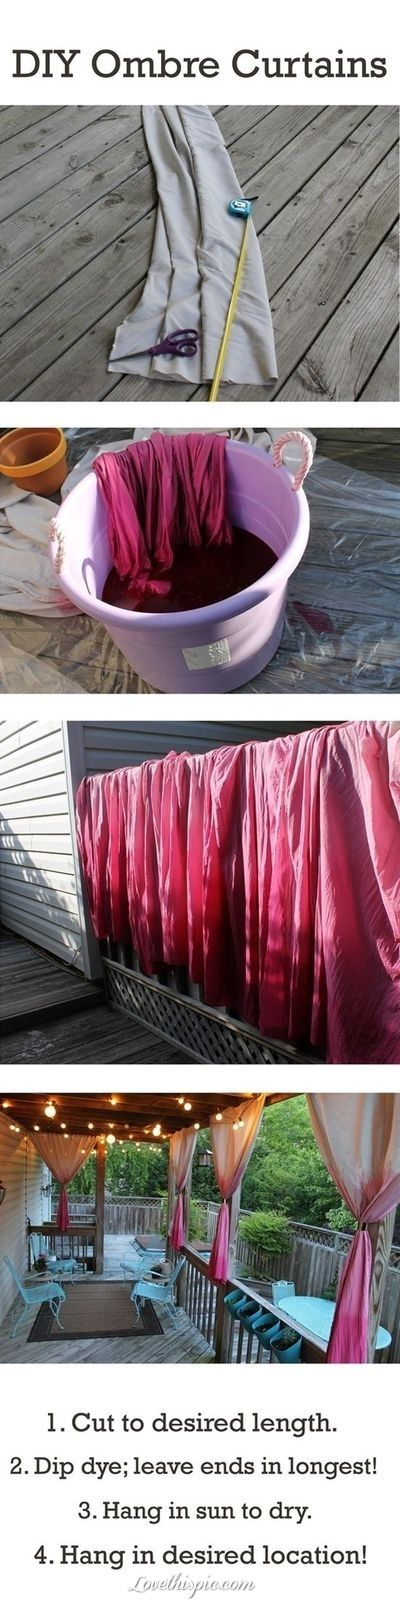 diy ombre curtains - this would look great on the deck